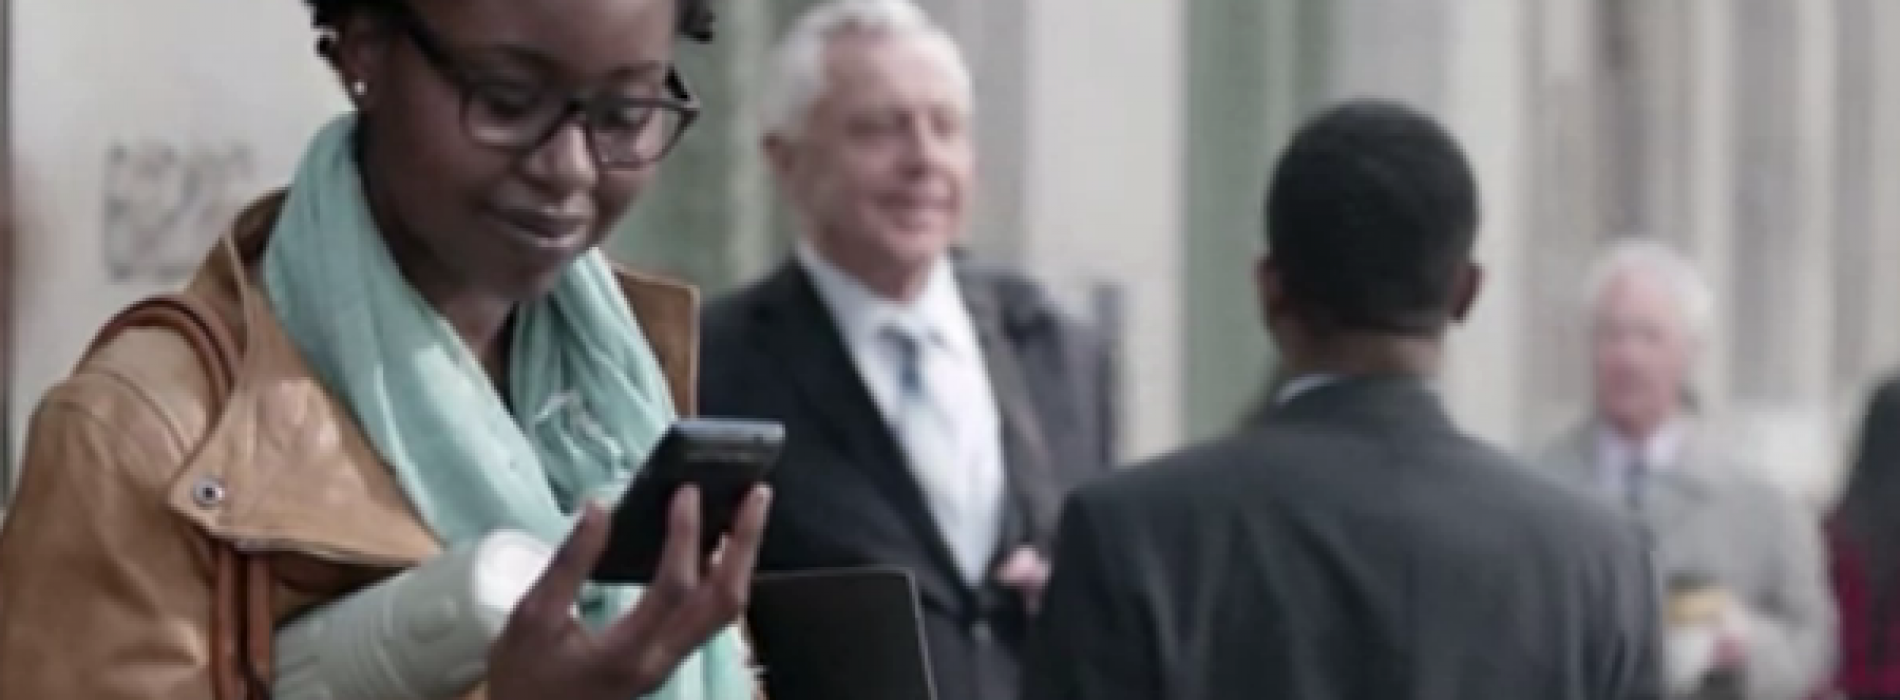 Verizon begins new, friendlier Droid Does campaign